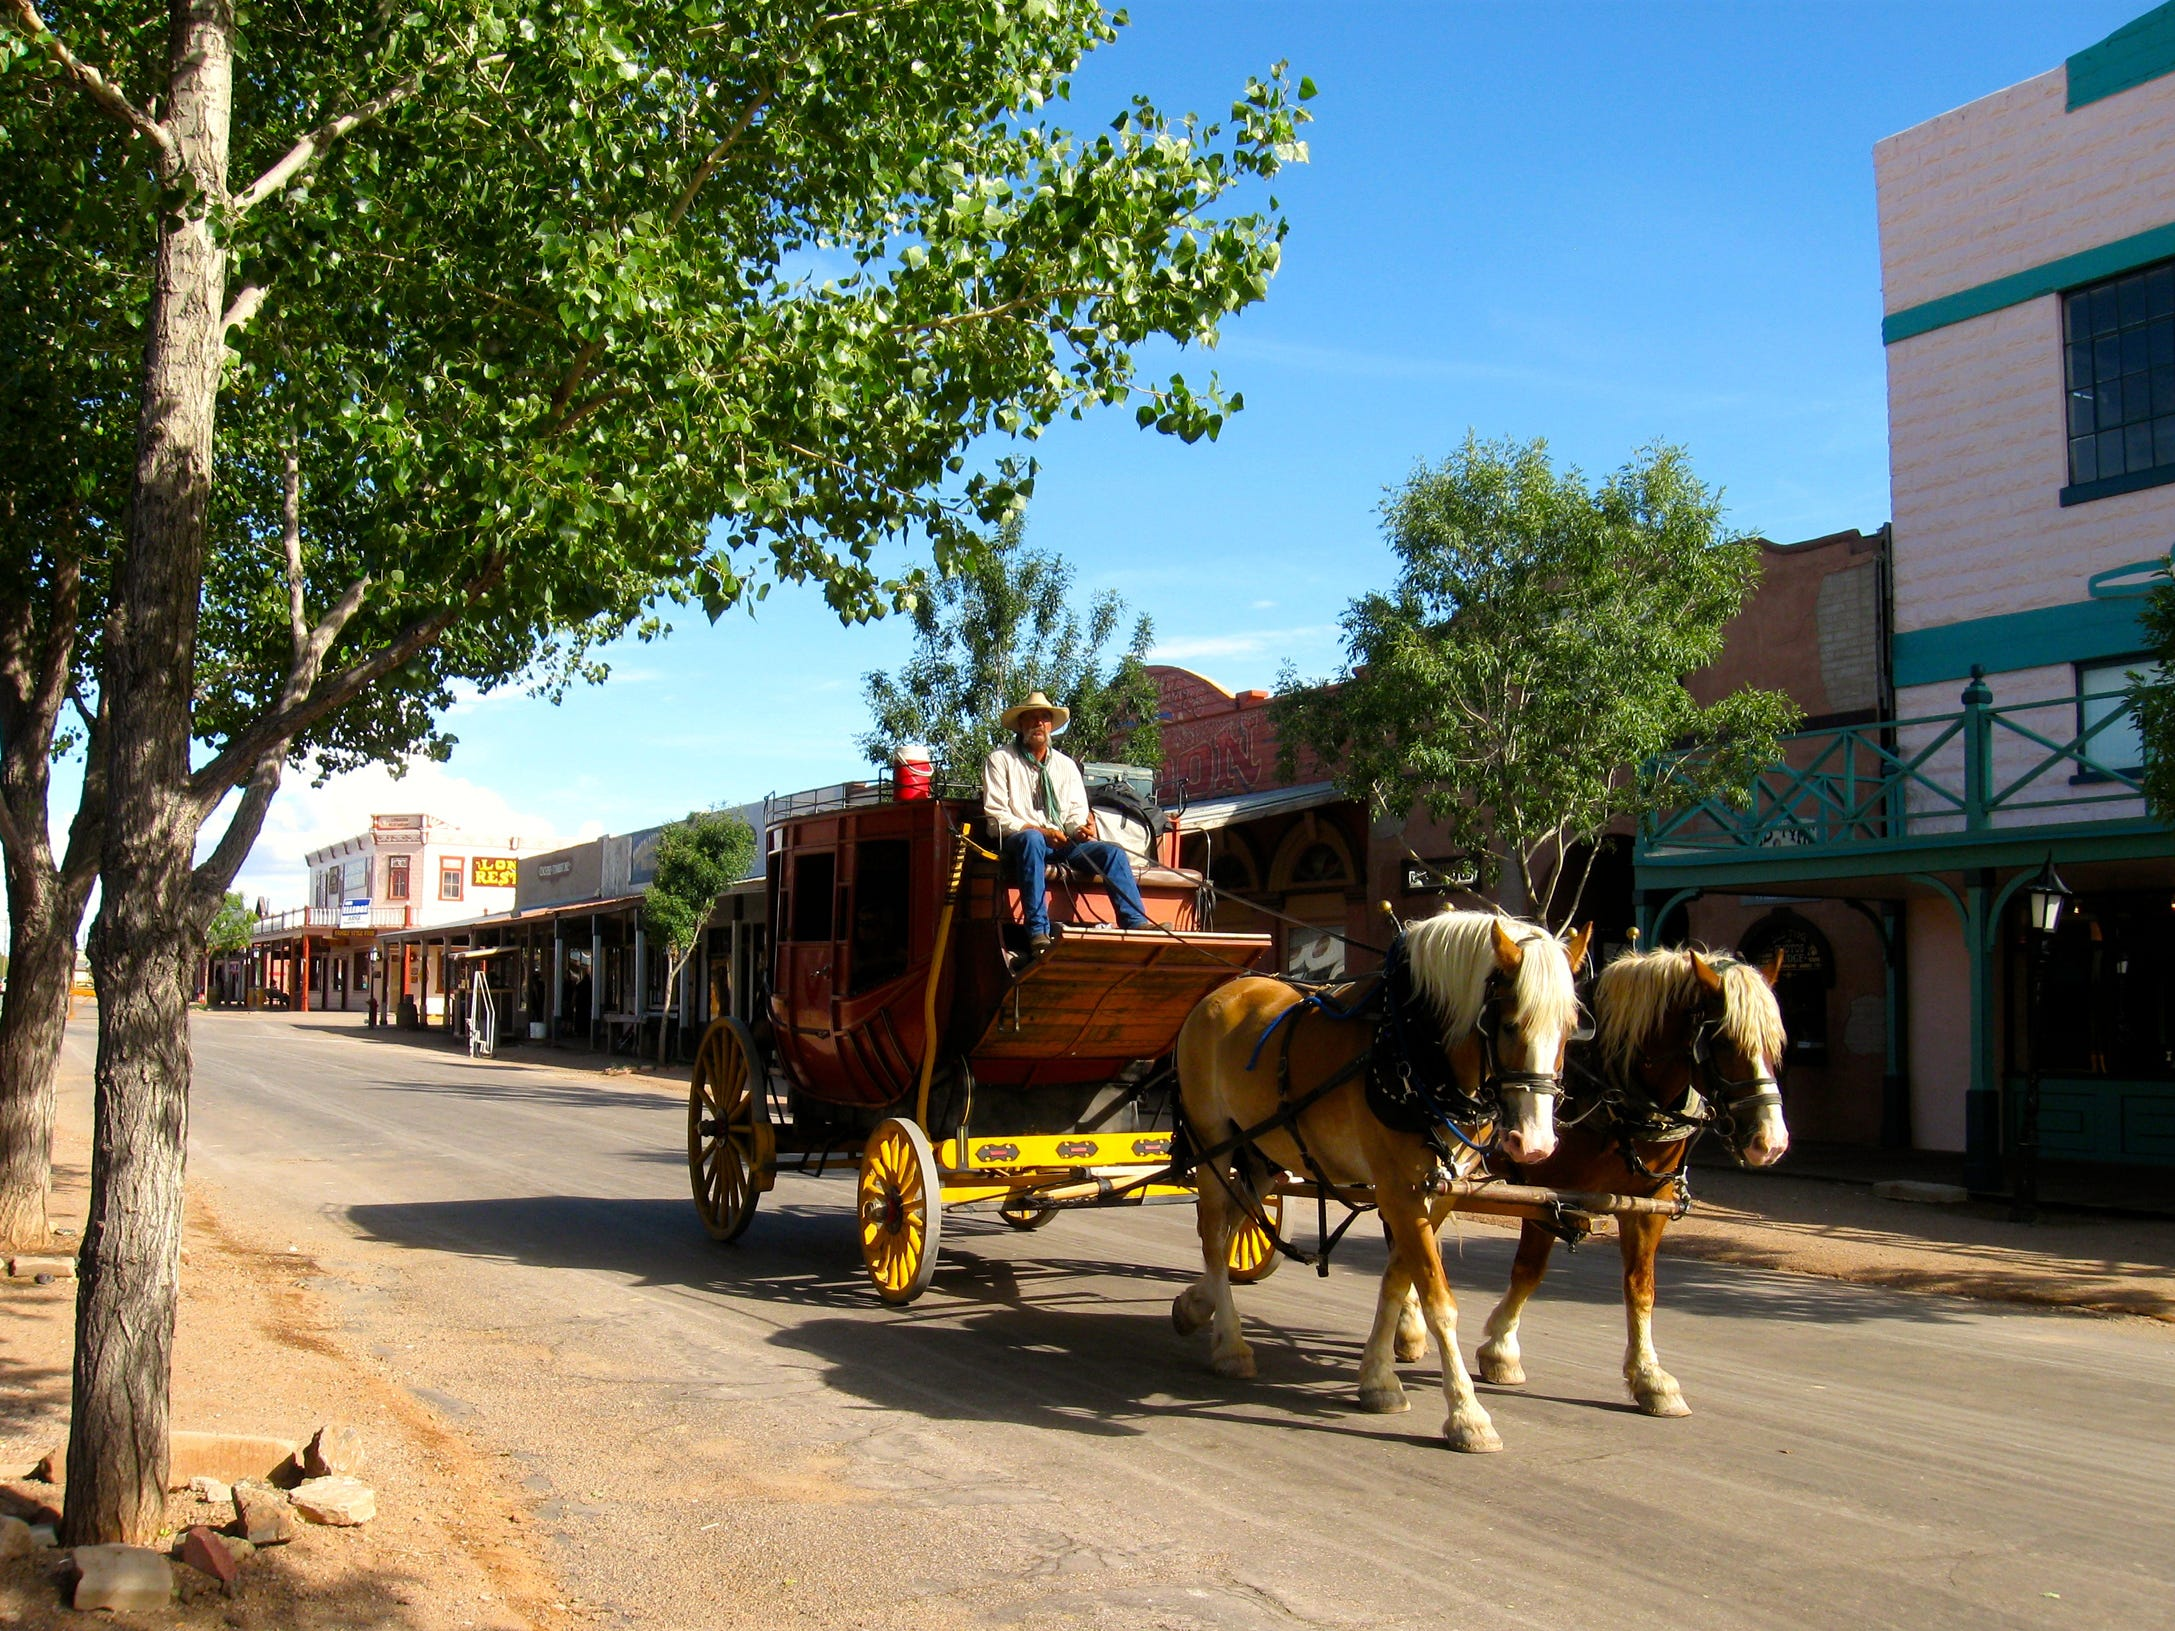 Stagecoaches and covered wagons clop through Tombstone during the daytime. The southern Arizona town depends on visitors wanting to experience the Old West.